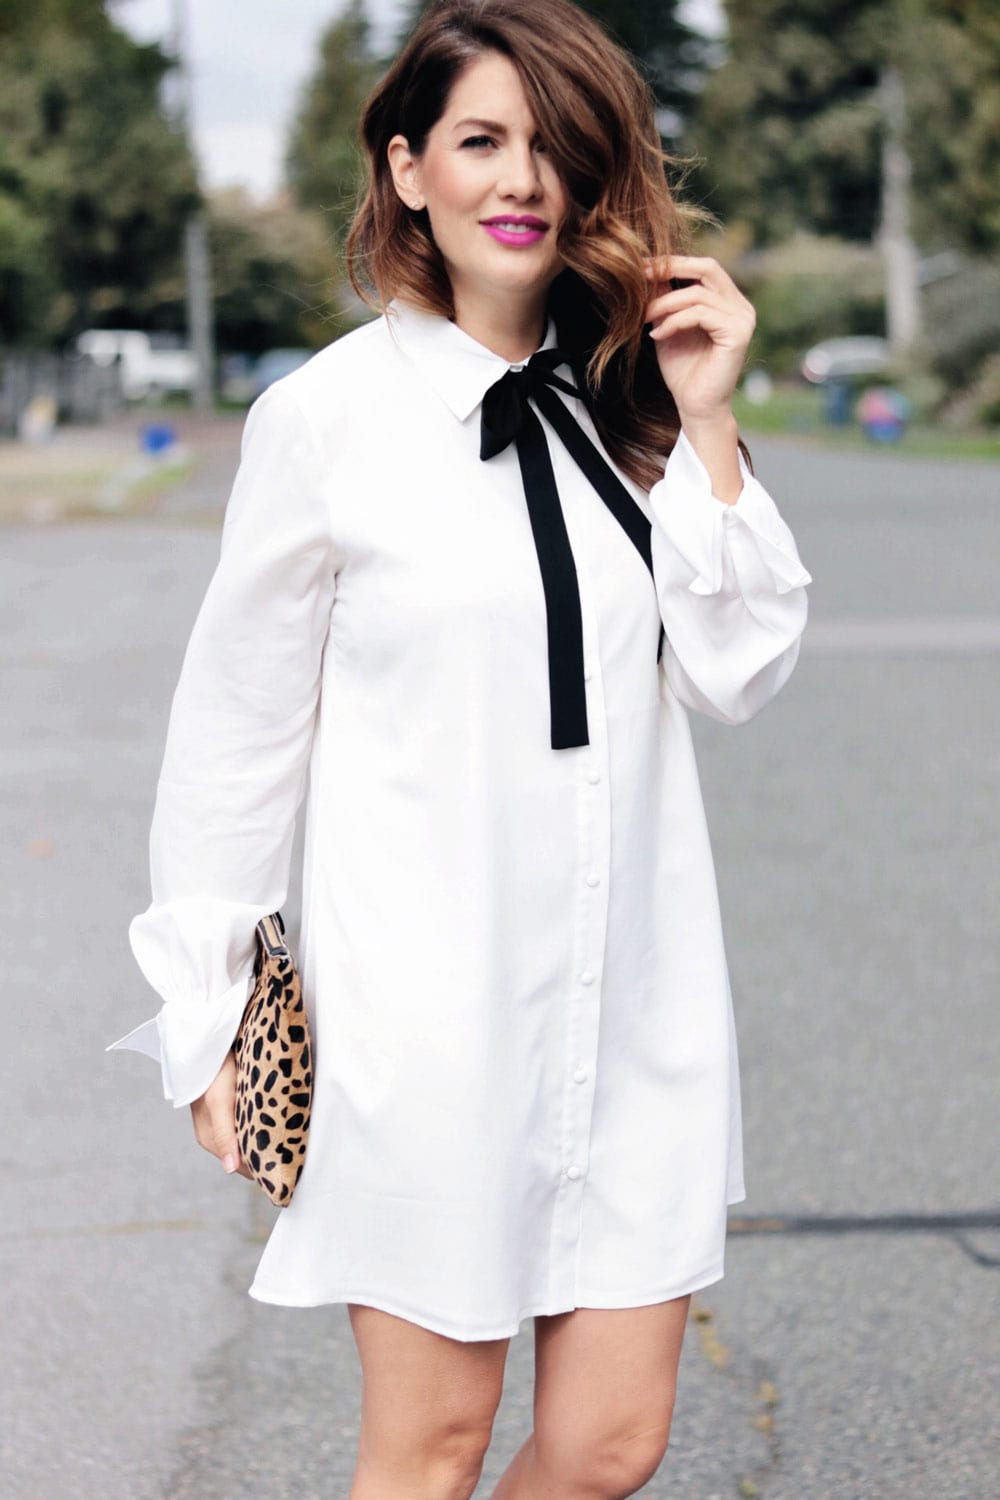 jillian harris wearing button up dress with bow tie